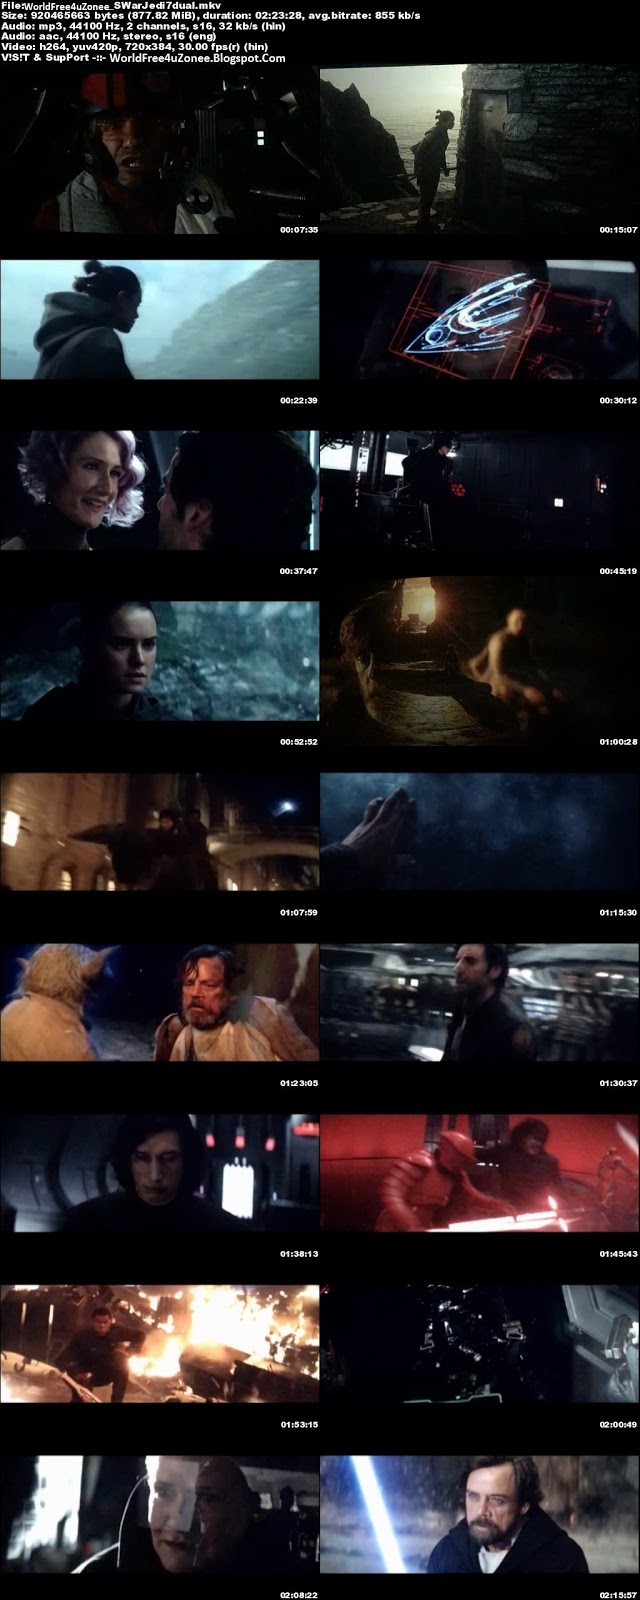 Star Wars The Last Jedi (2017) Dual Audio HDCAM 720p 850MB Full Movie Free Download And Watch Online Latest Hollywood Hindi Dubbed Dual Audio Movies 2017 Free At WorldFree4uZonee.Blogspot.Com